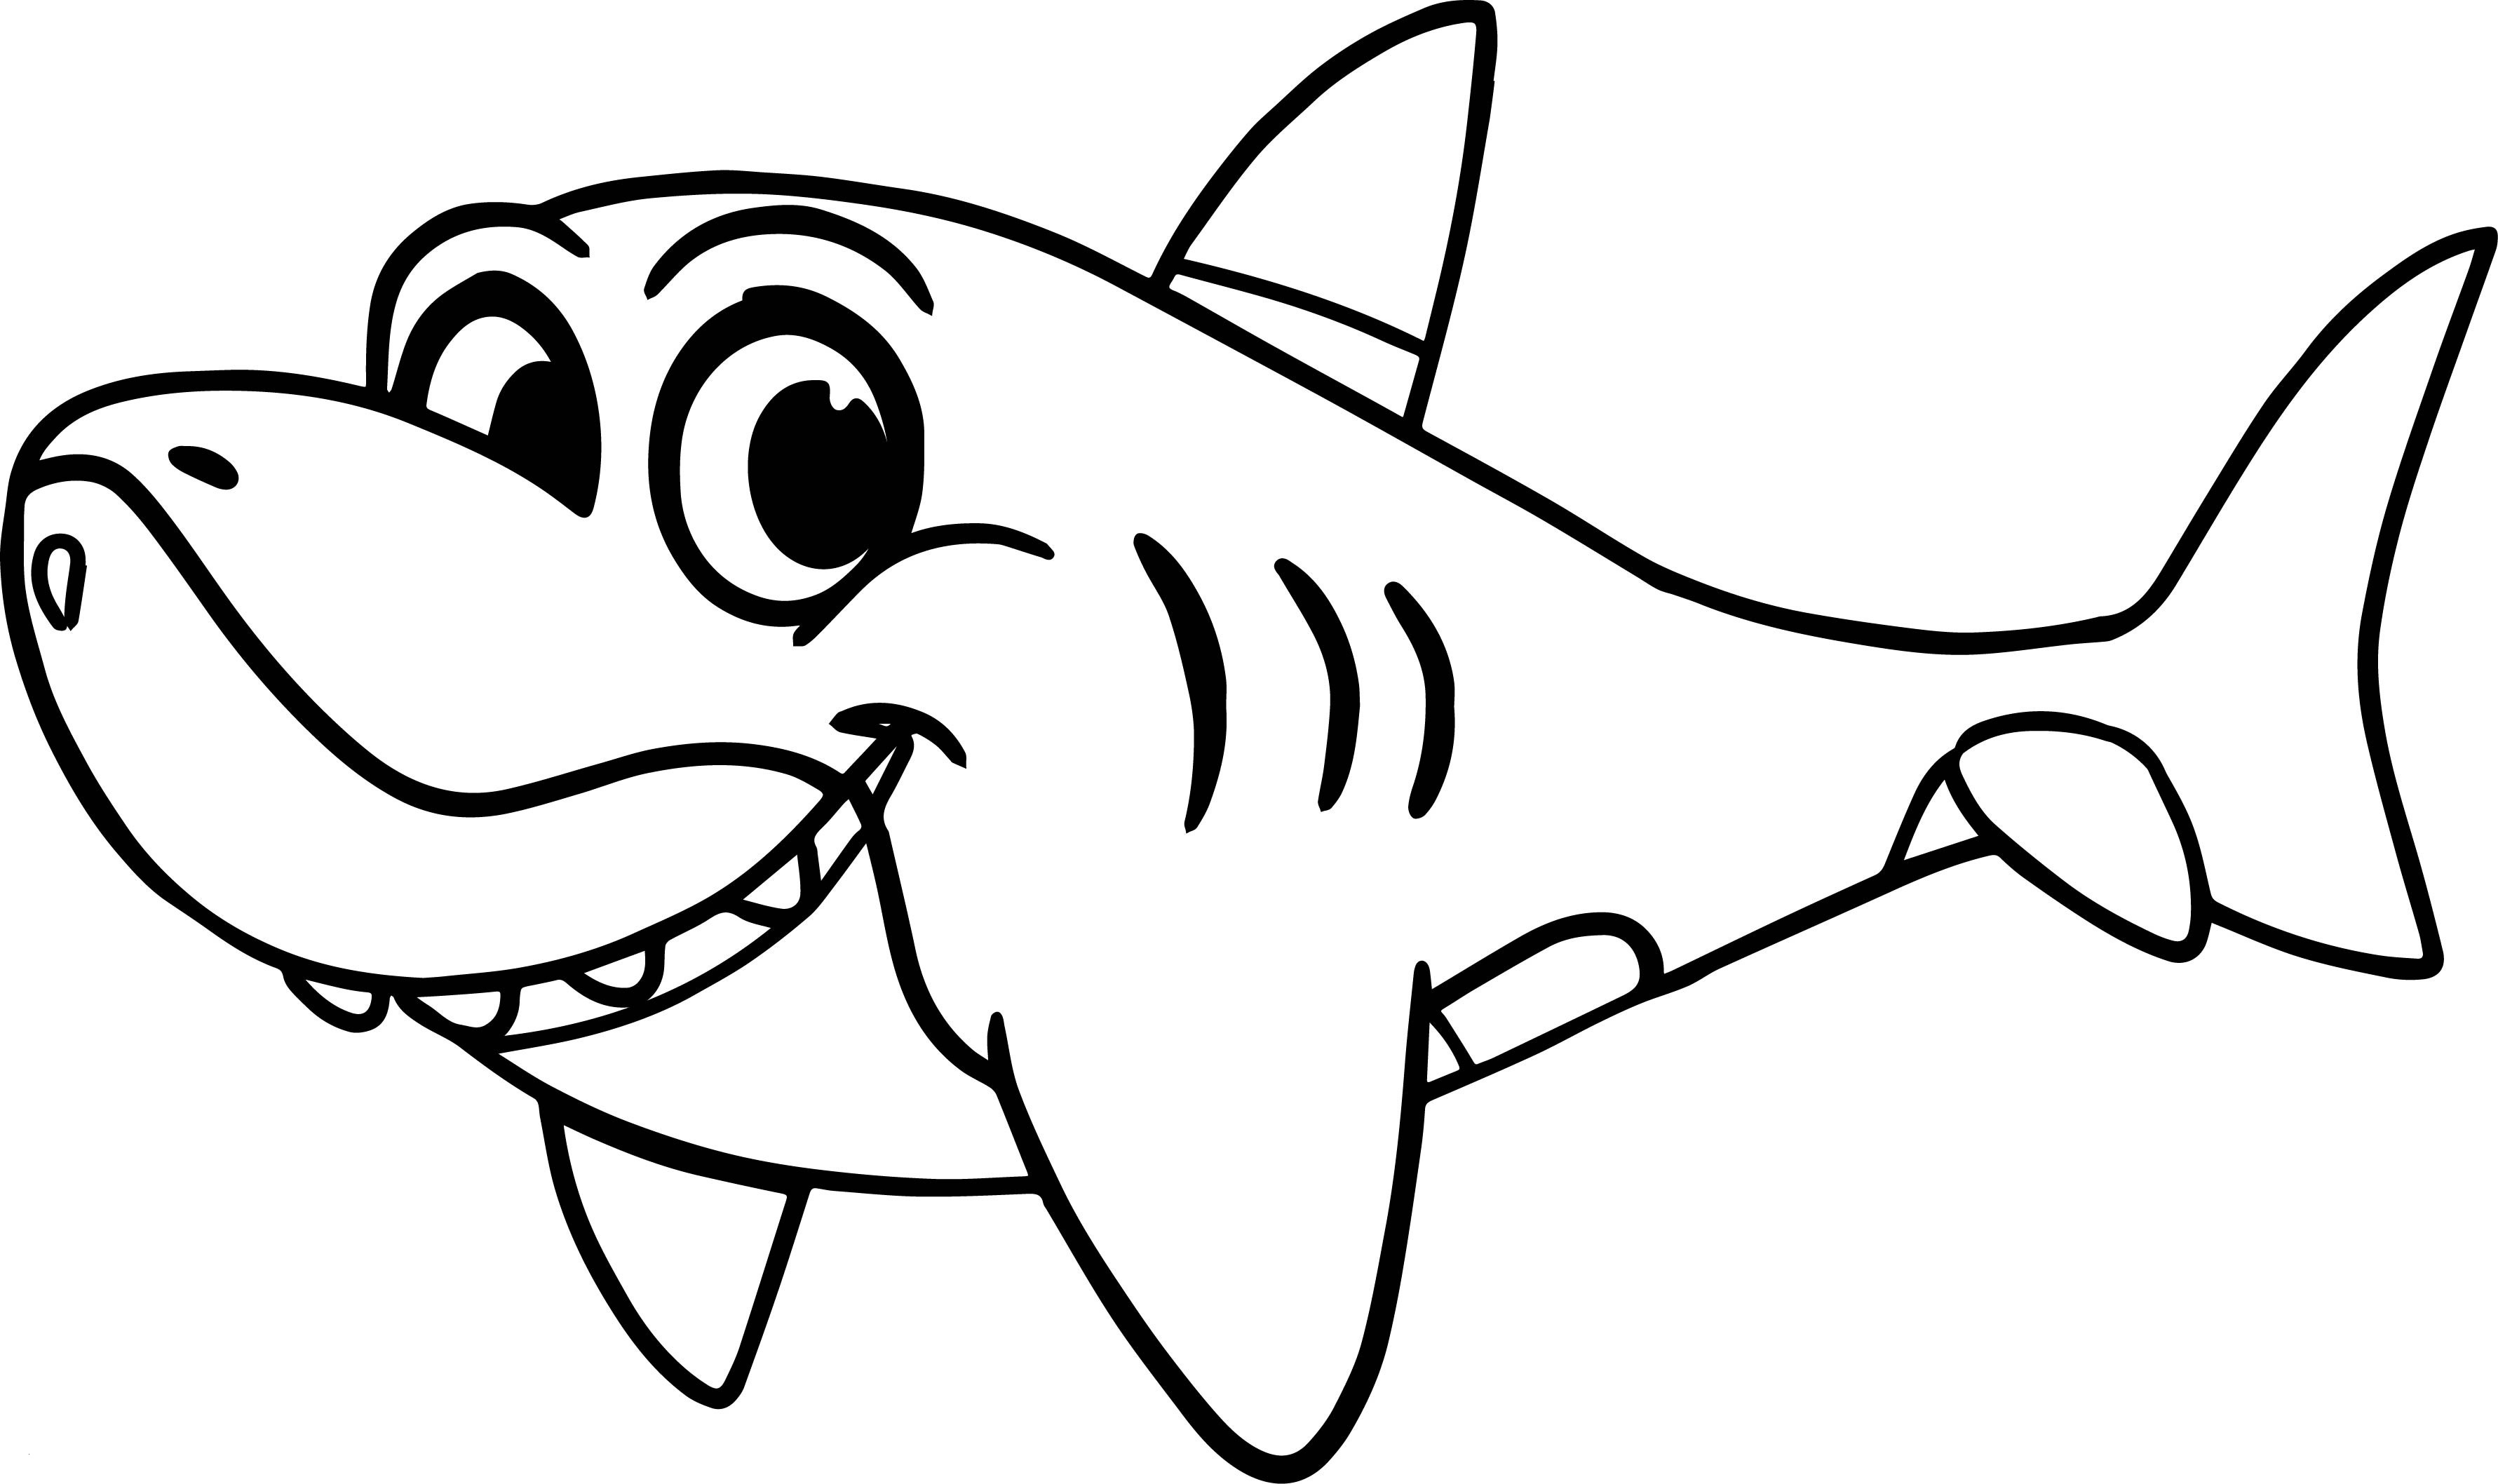 coloring pages sharks printable hungry shark world coloring pages at getcoloringscom pages printable sharks coloring